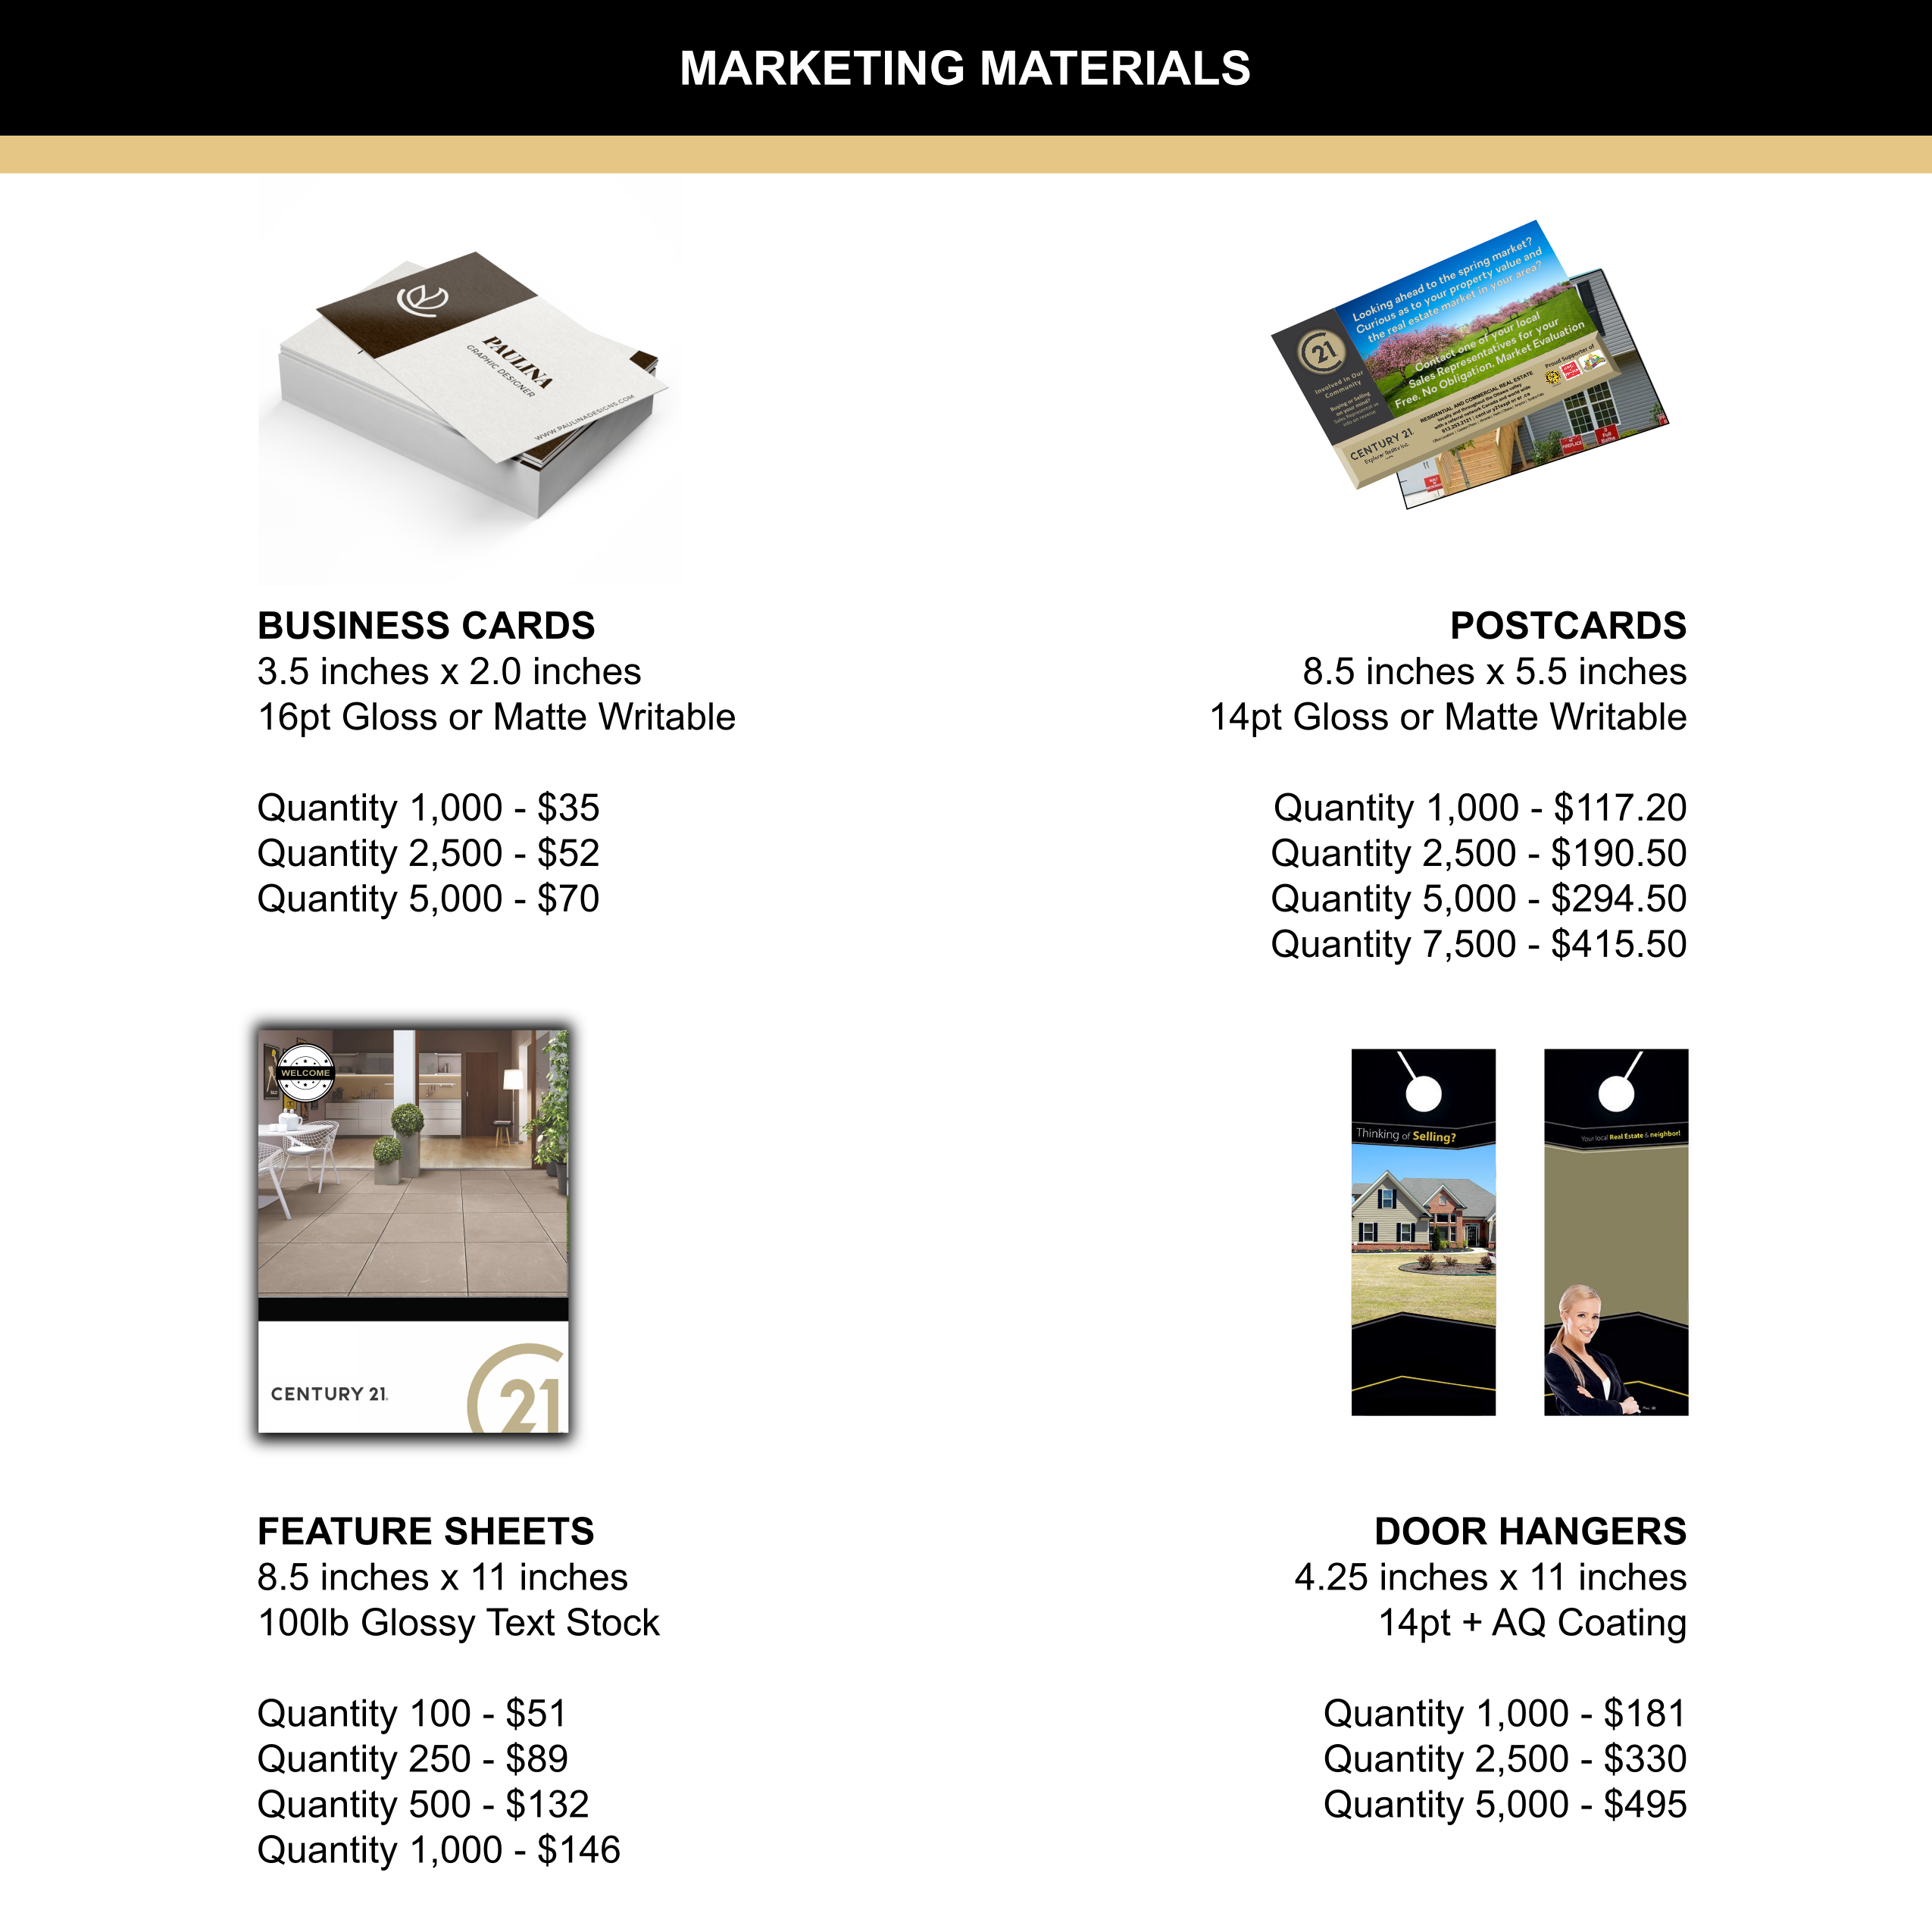 Marketing Materials Pg 2